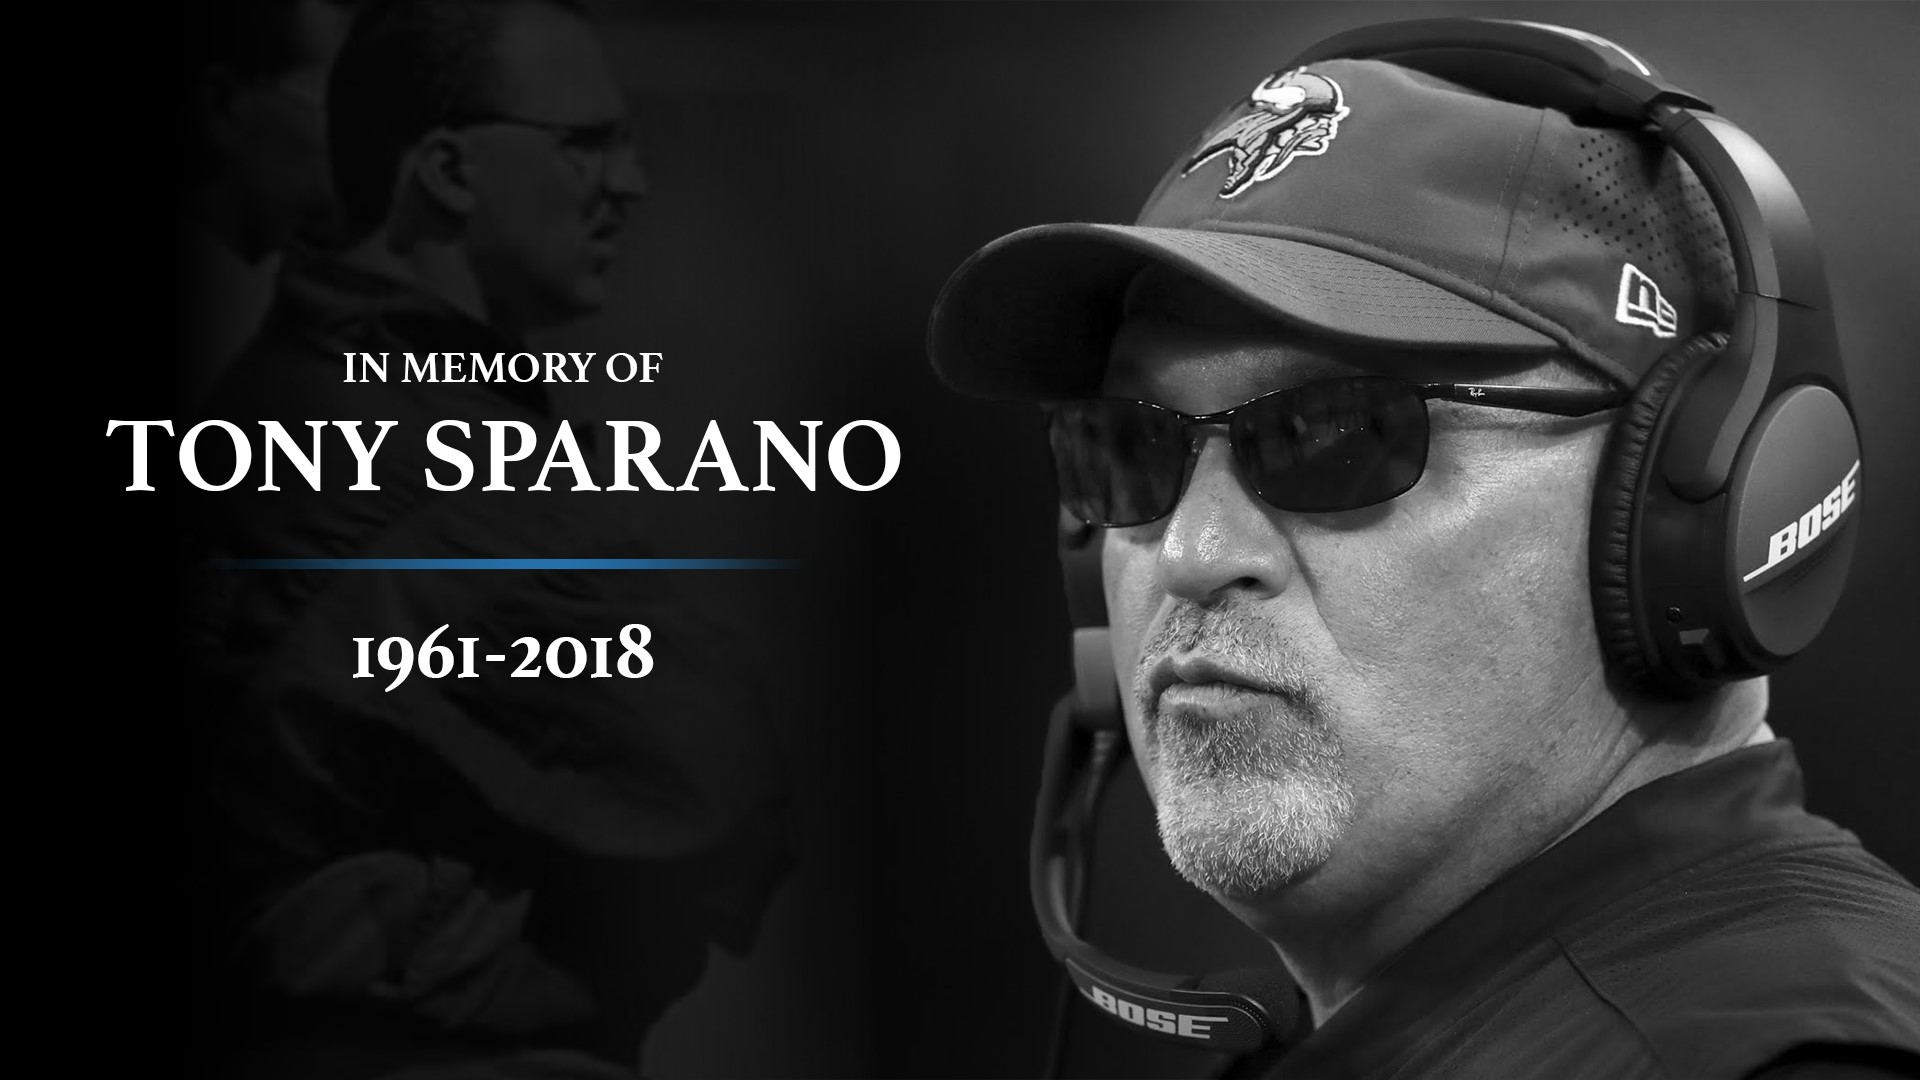 Image of Tony Sparano